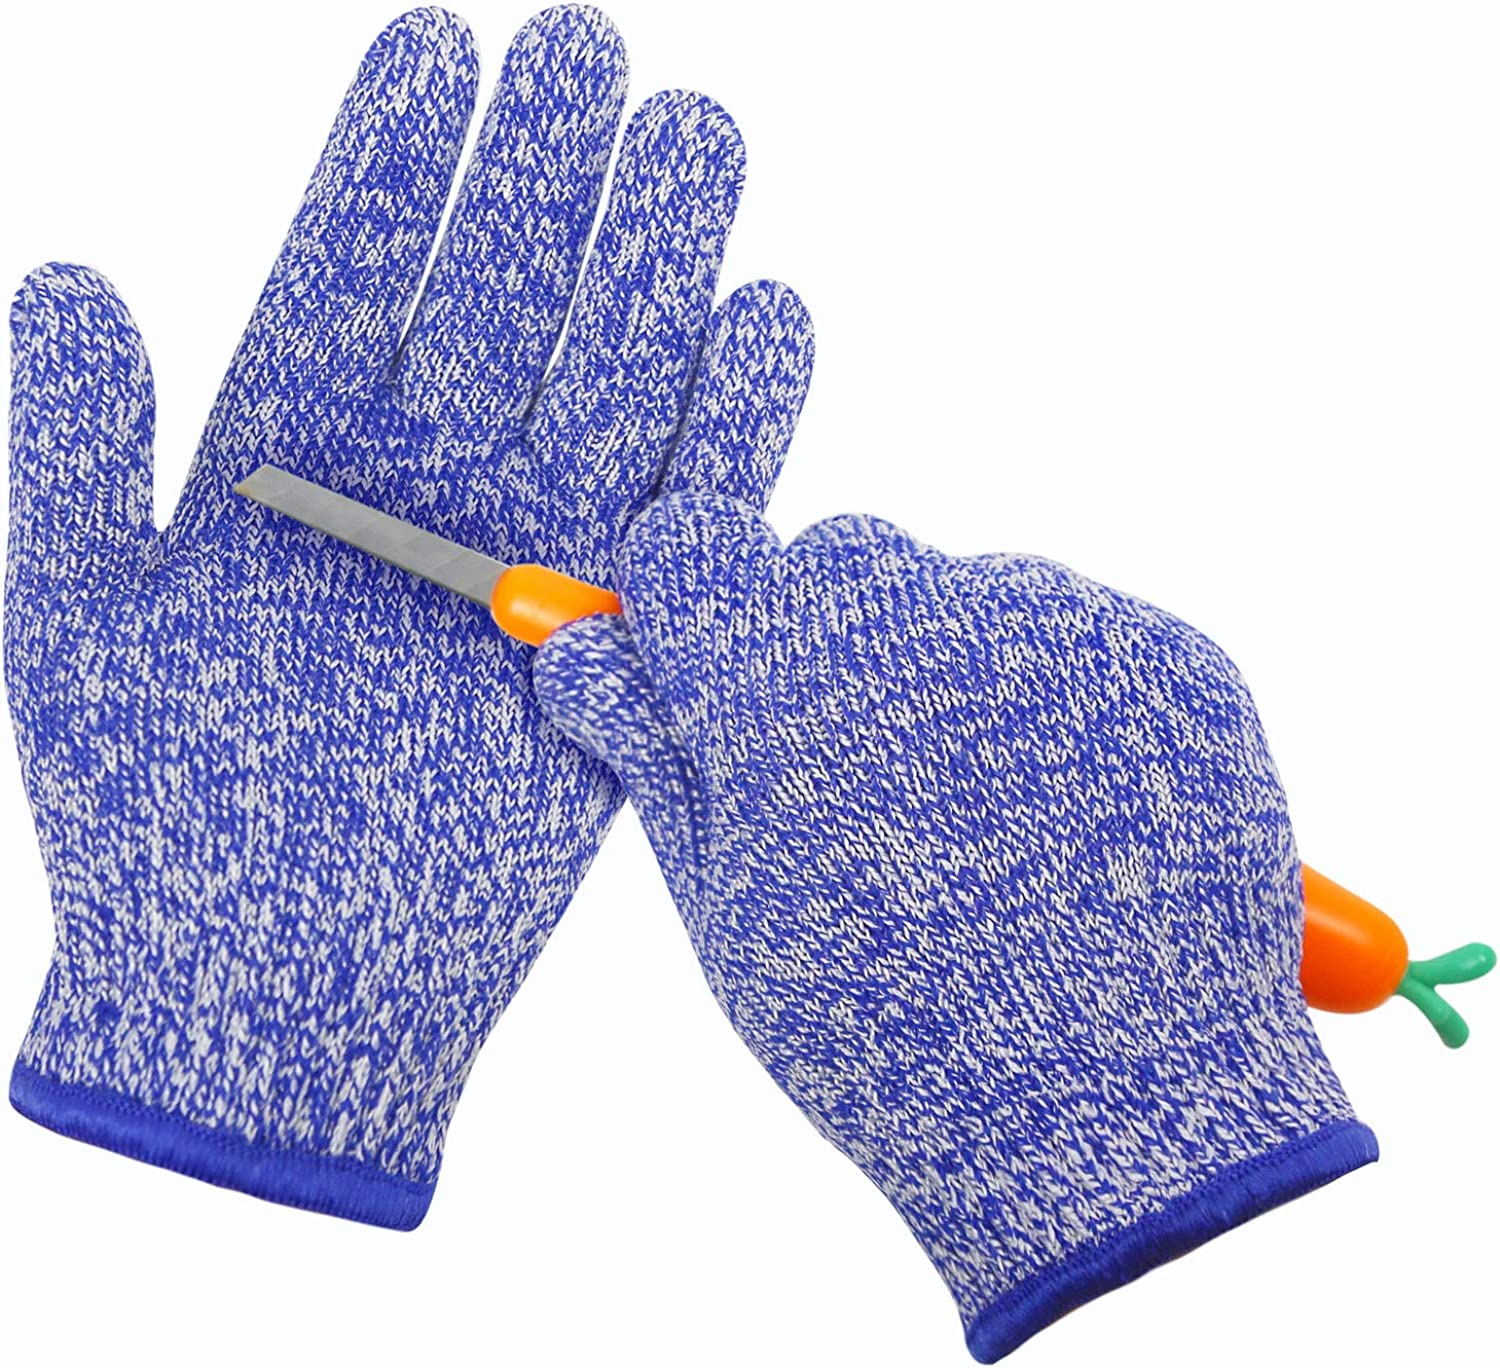 MIG4U Cut Resistant Gloves for Kids Food Grade Small Hands Protection Safety Glove